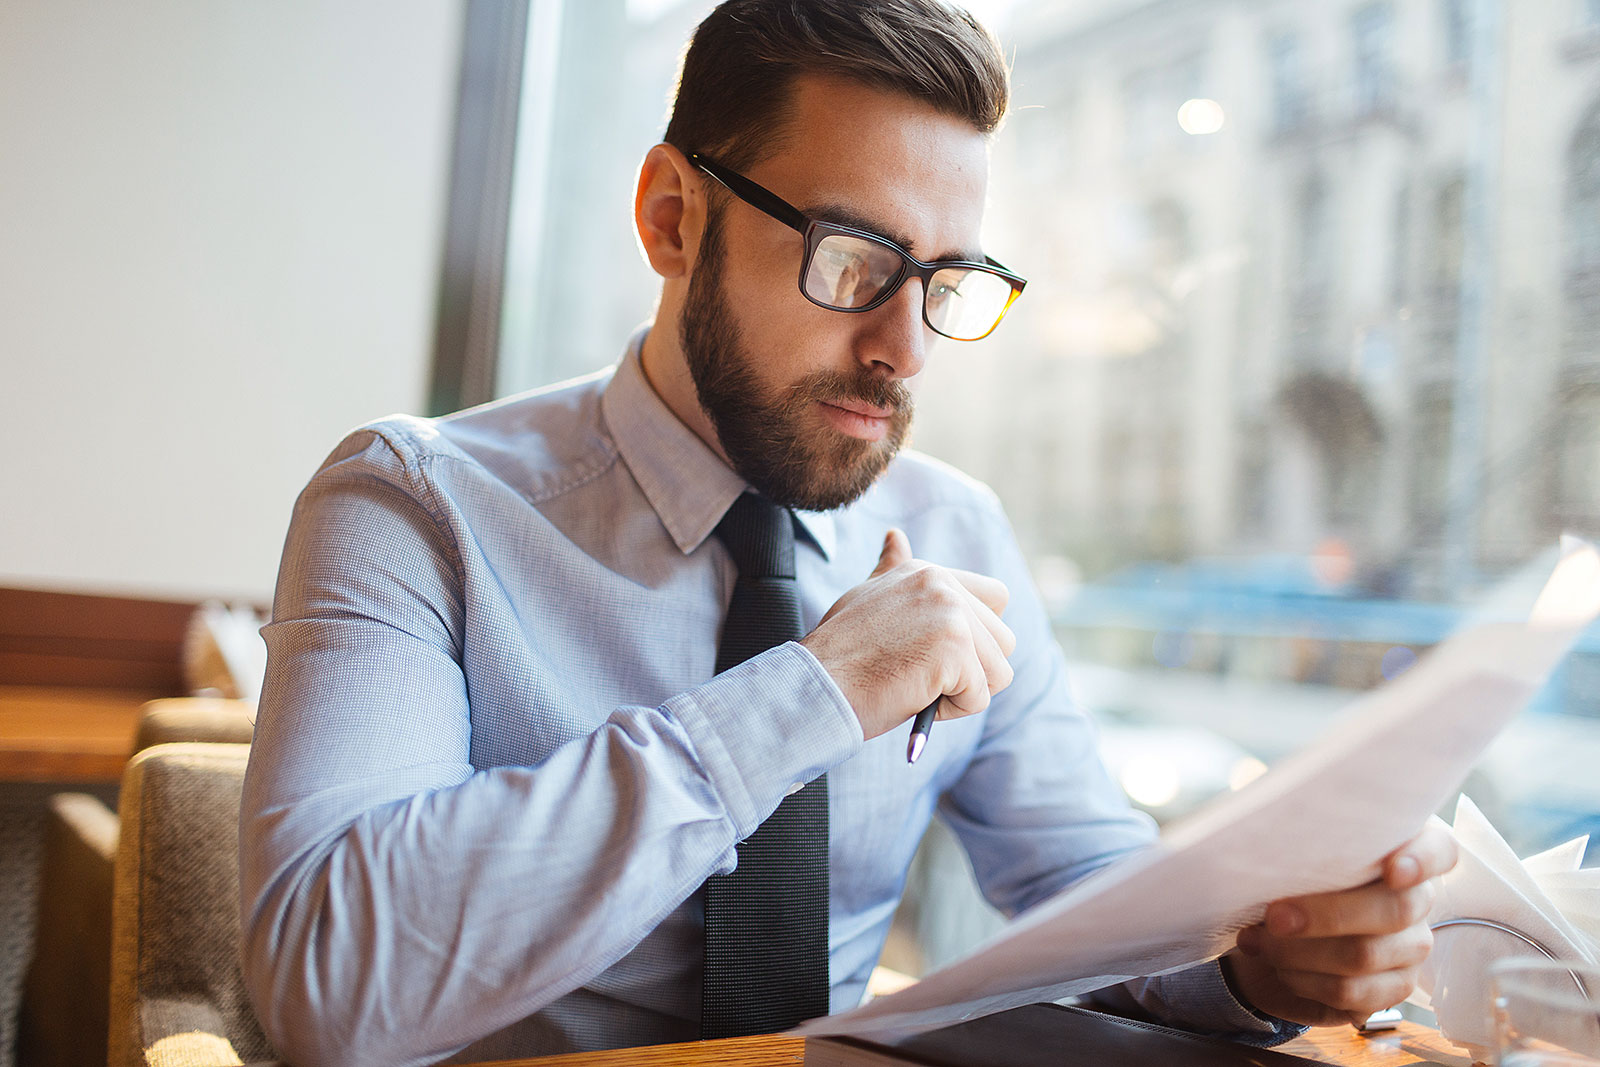 Best resume examples for 2020: How to build a strong resume